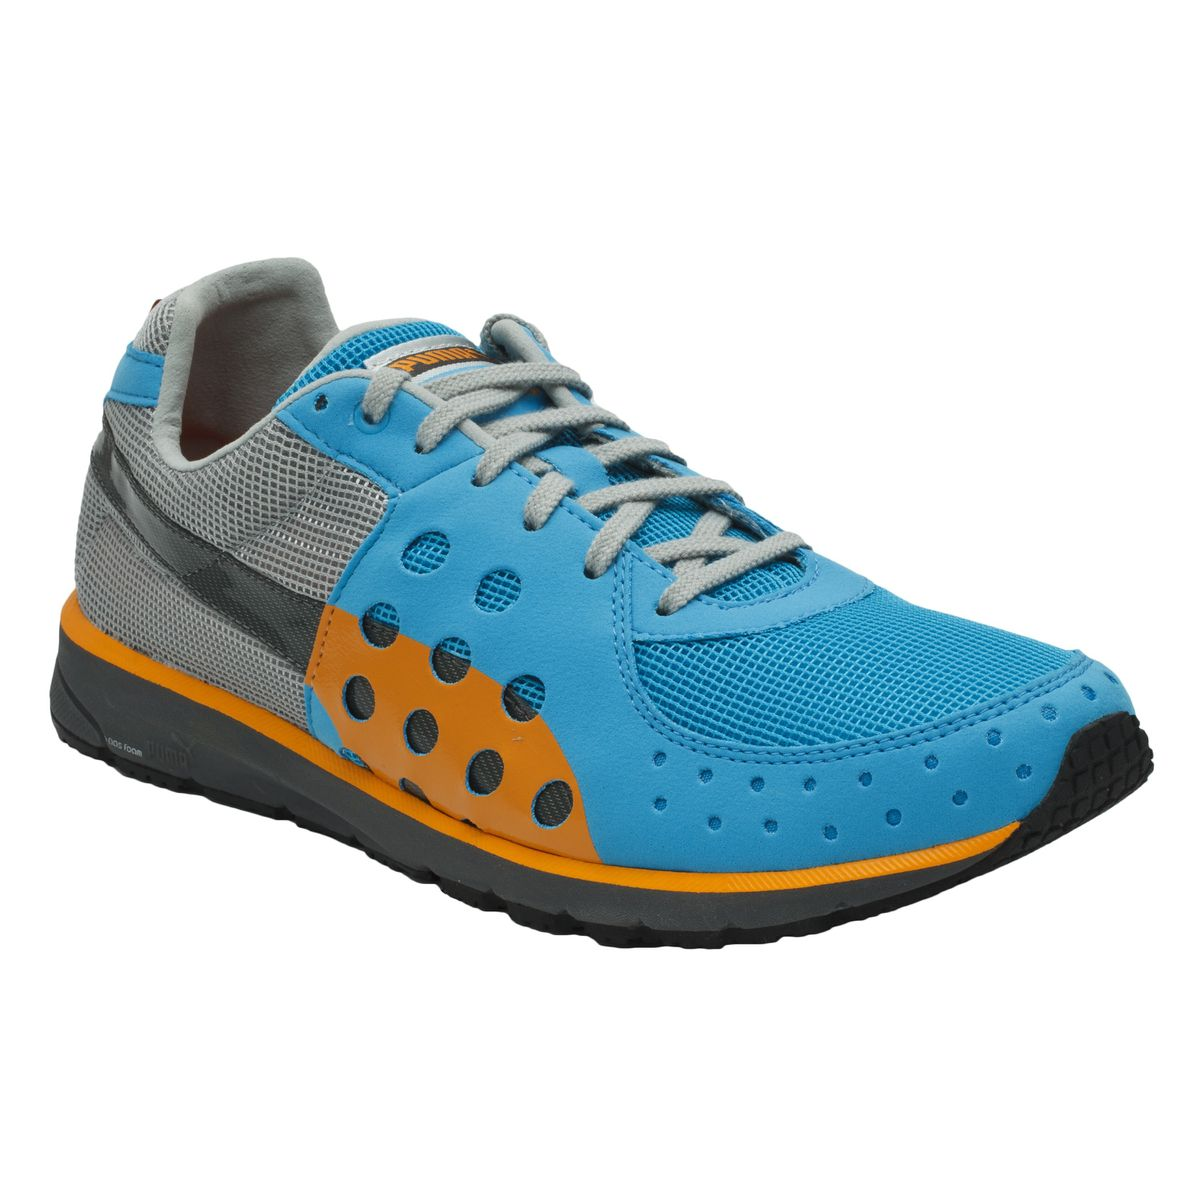 Mens Shoe Warehouse South Africa